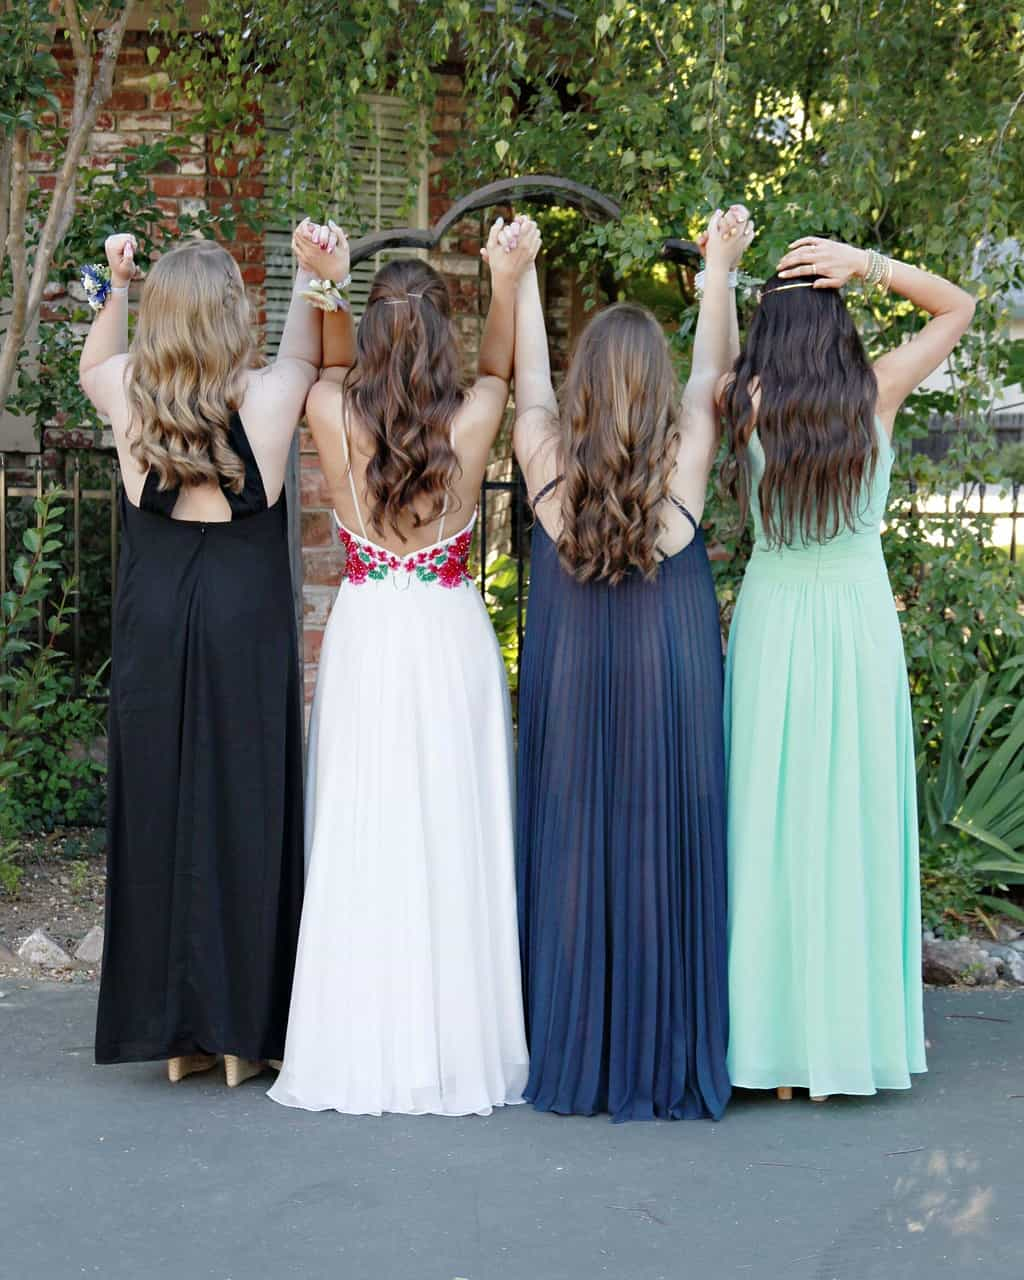 4 girls in prom gowns facing away from camera holding hands